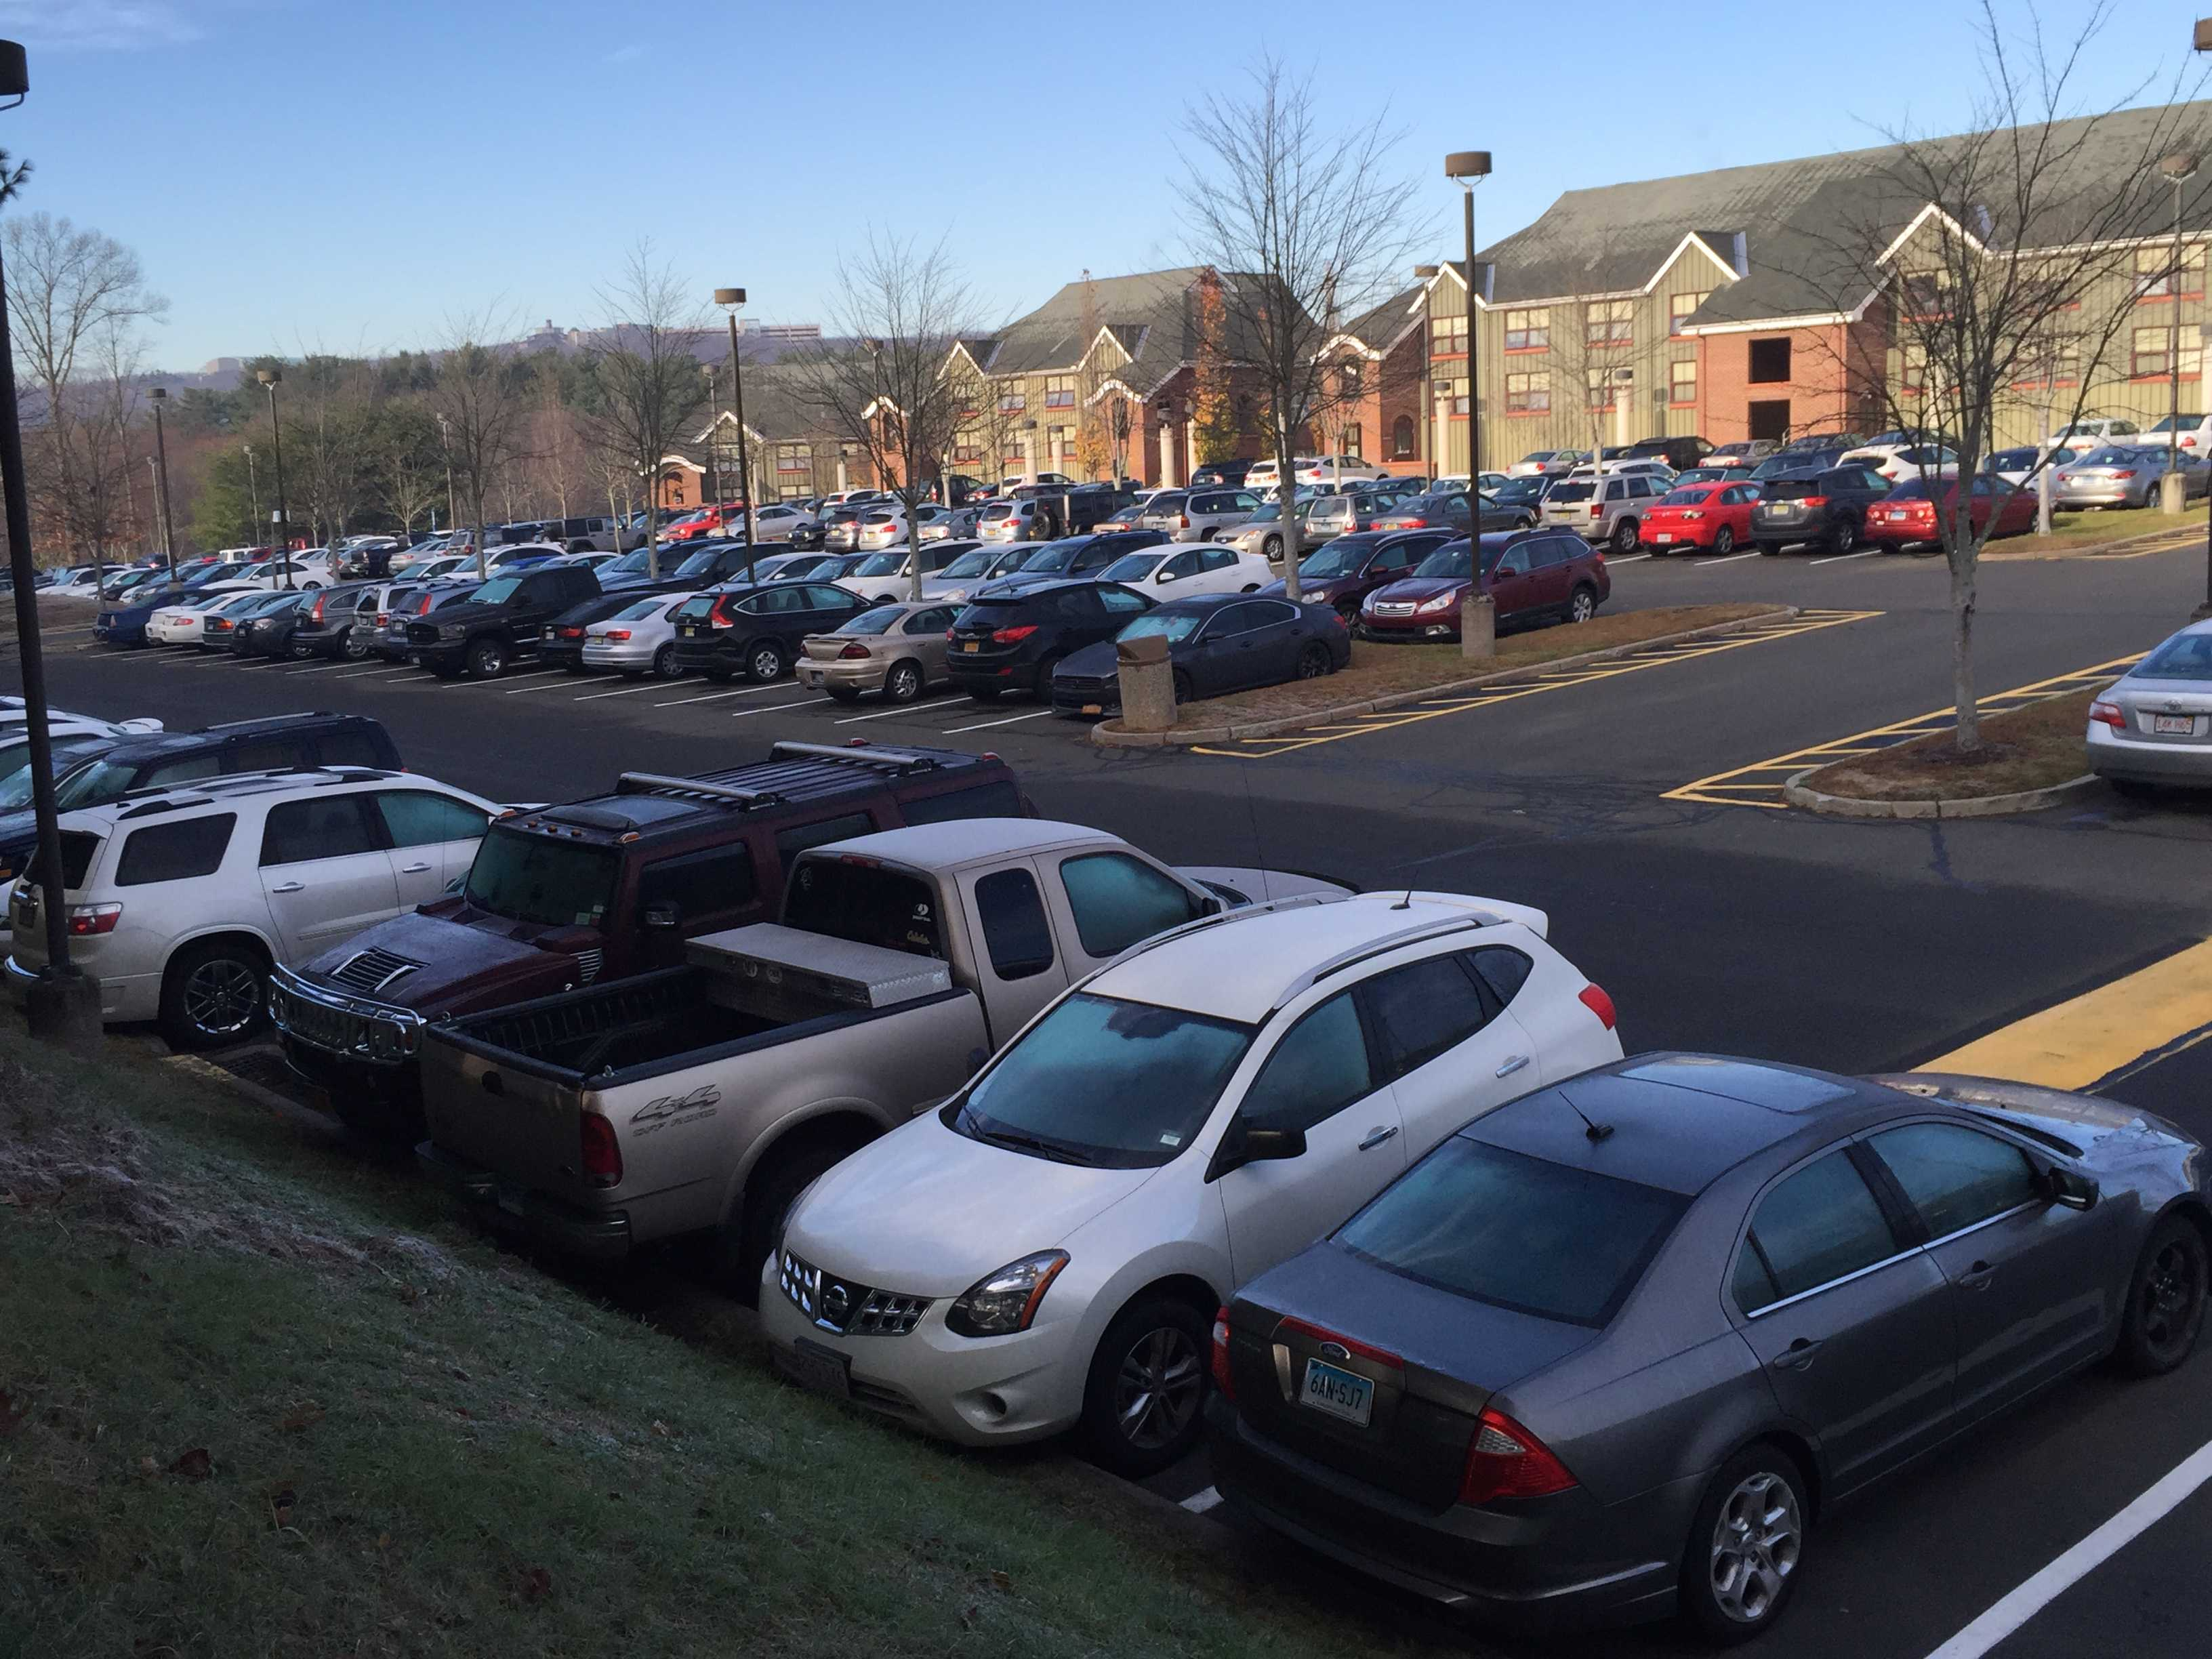 Hilltop lot parking problems increase